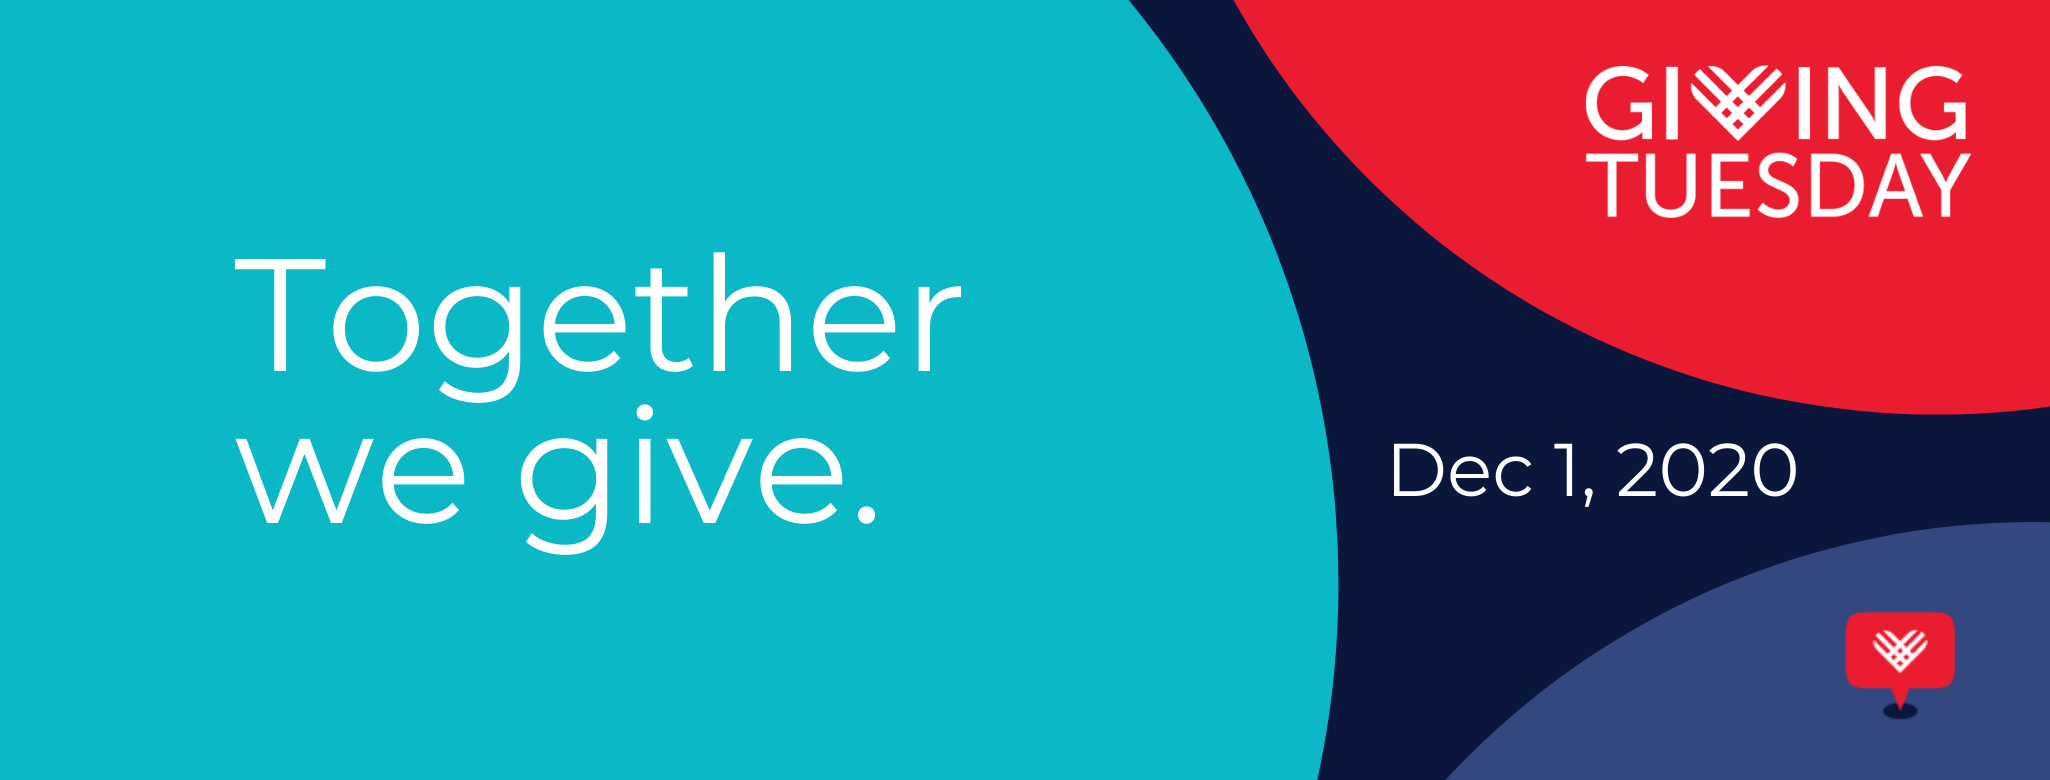 Together we give: Giving Tuesday is December 1, 2020.